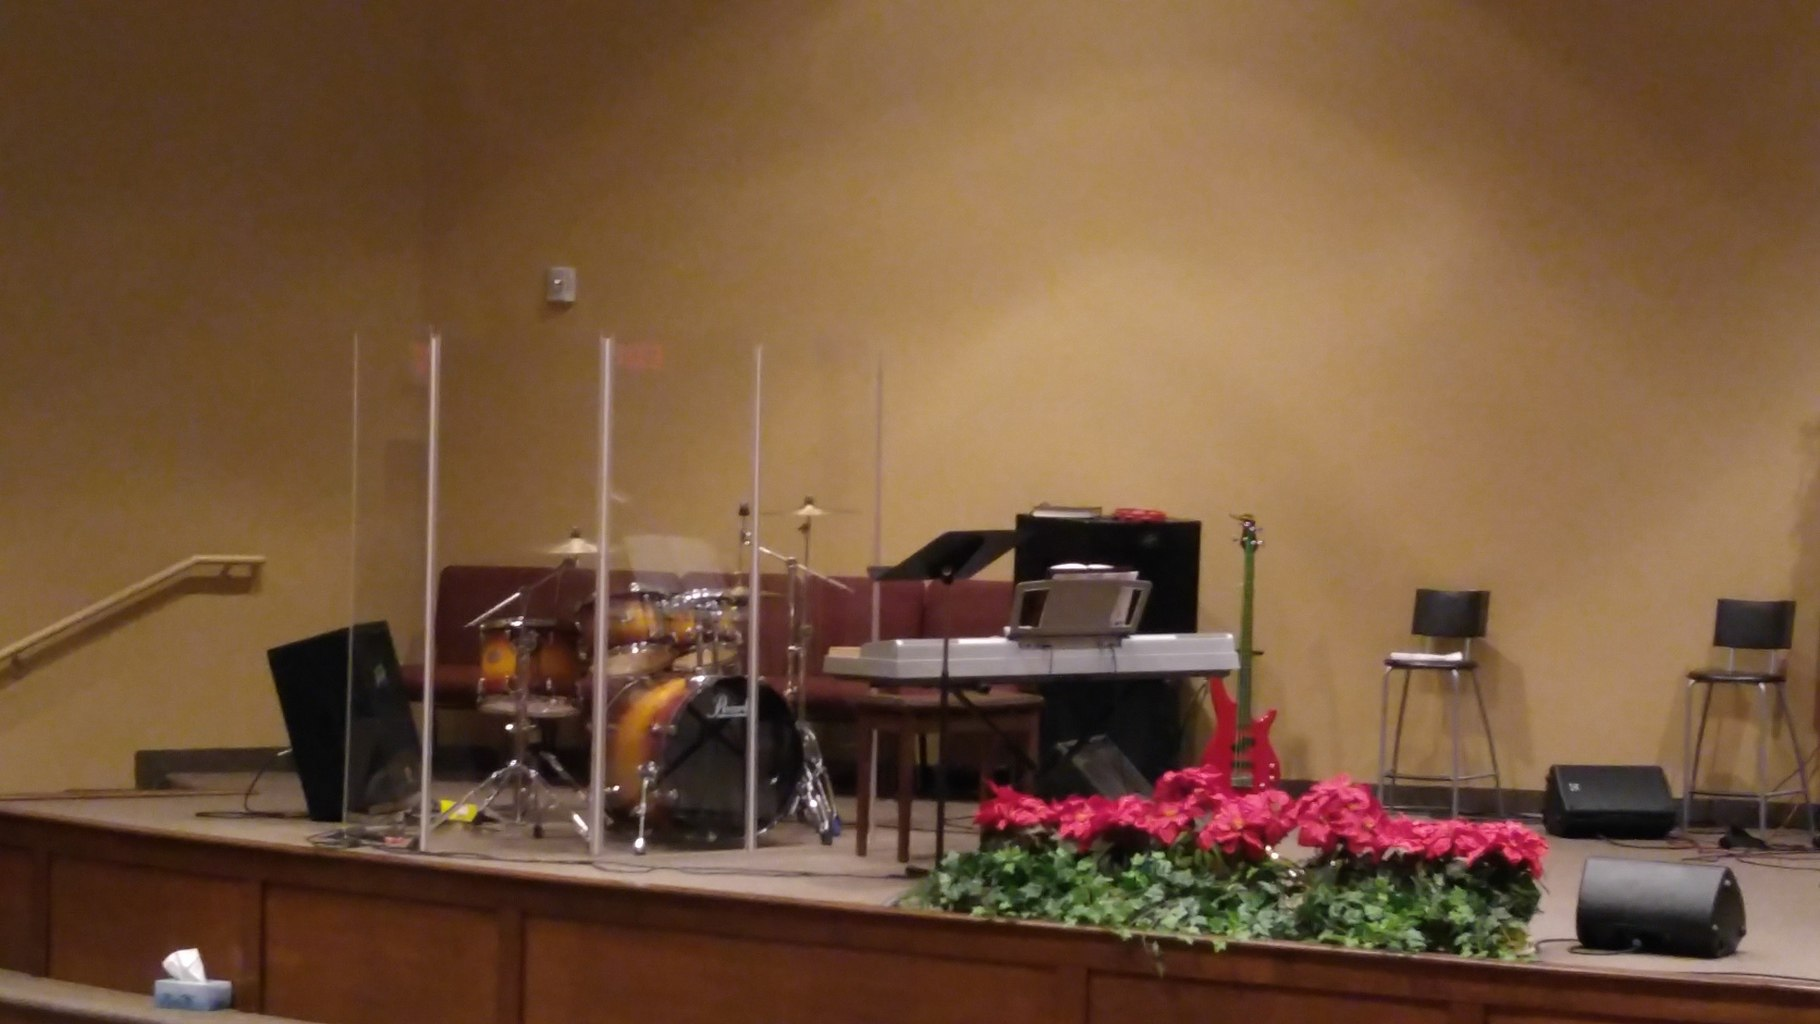 Podium showing drum set